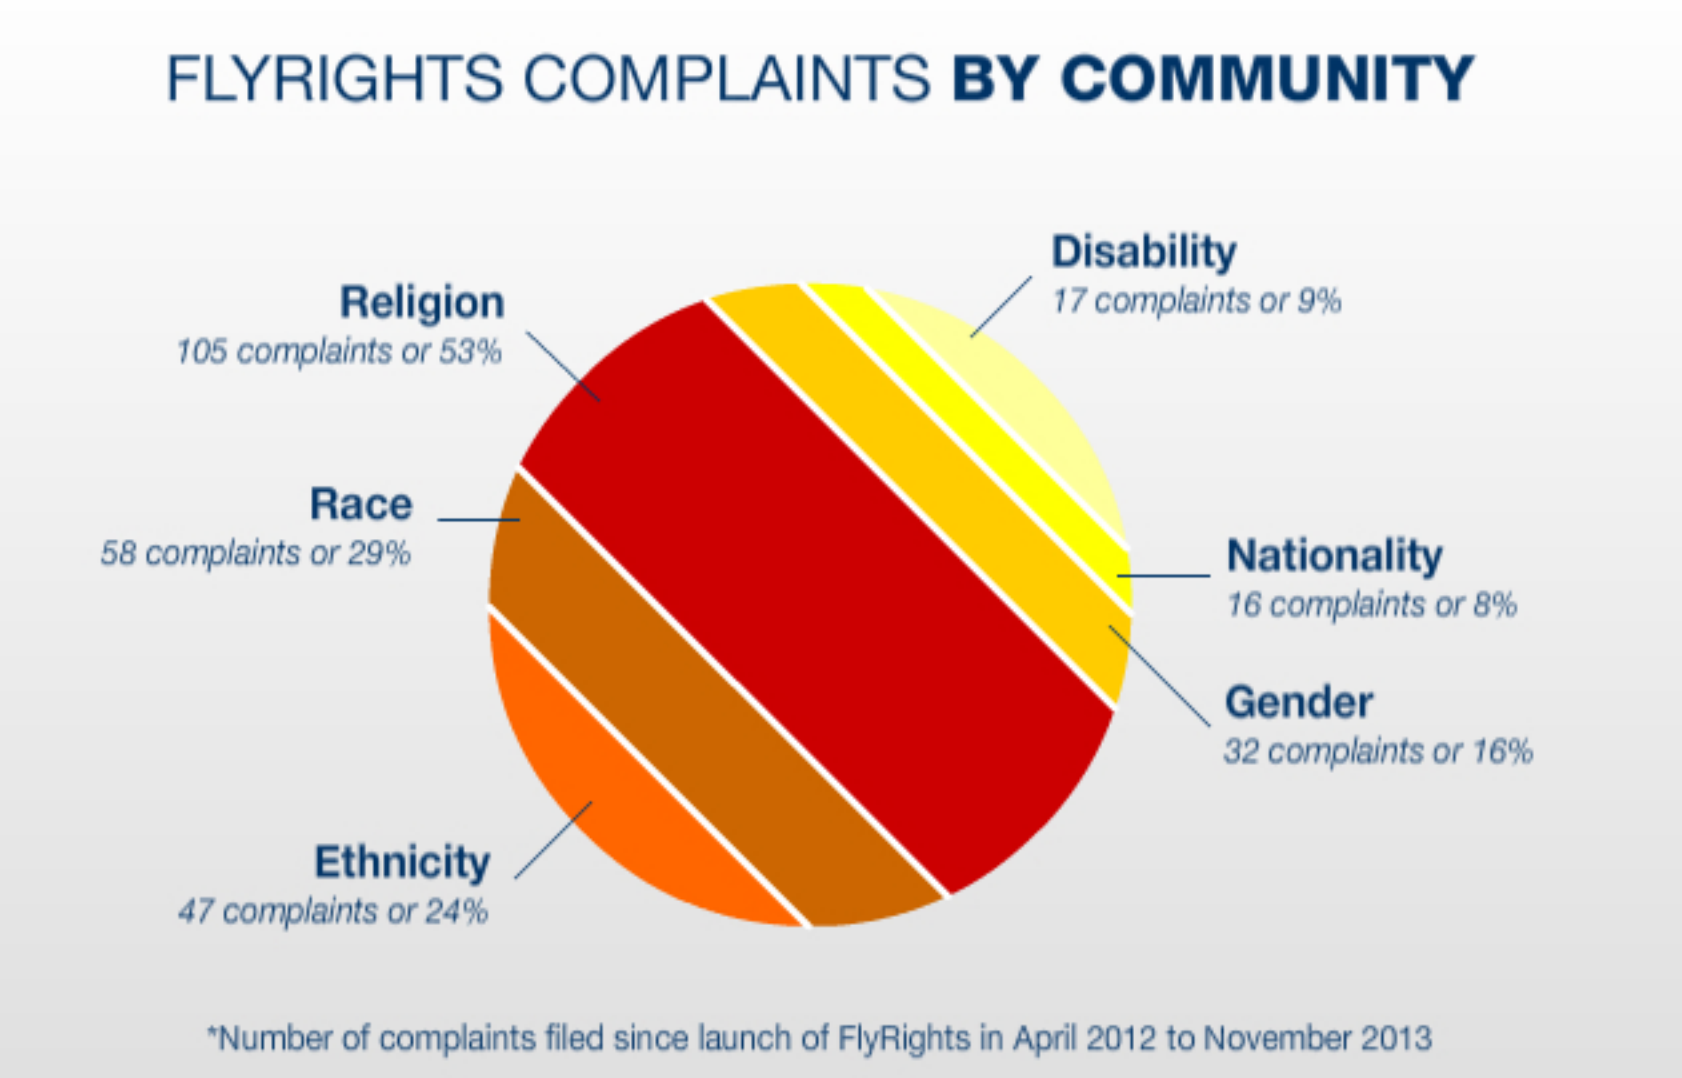 Complaints logged via the Sikh Coalition's FlyRights app suggest that religion and race account for the vast majority of allegations of discriminatory treatment.